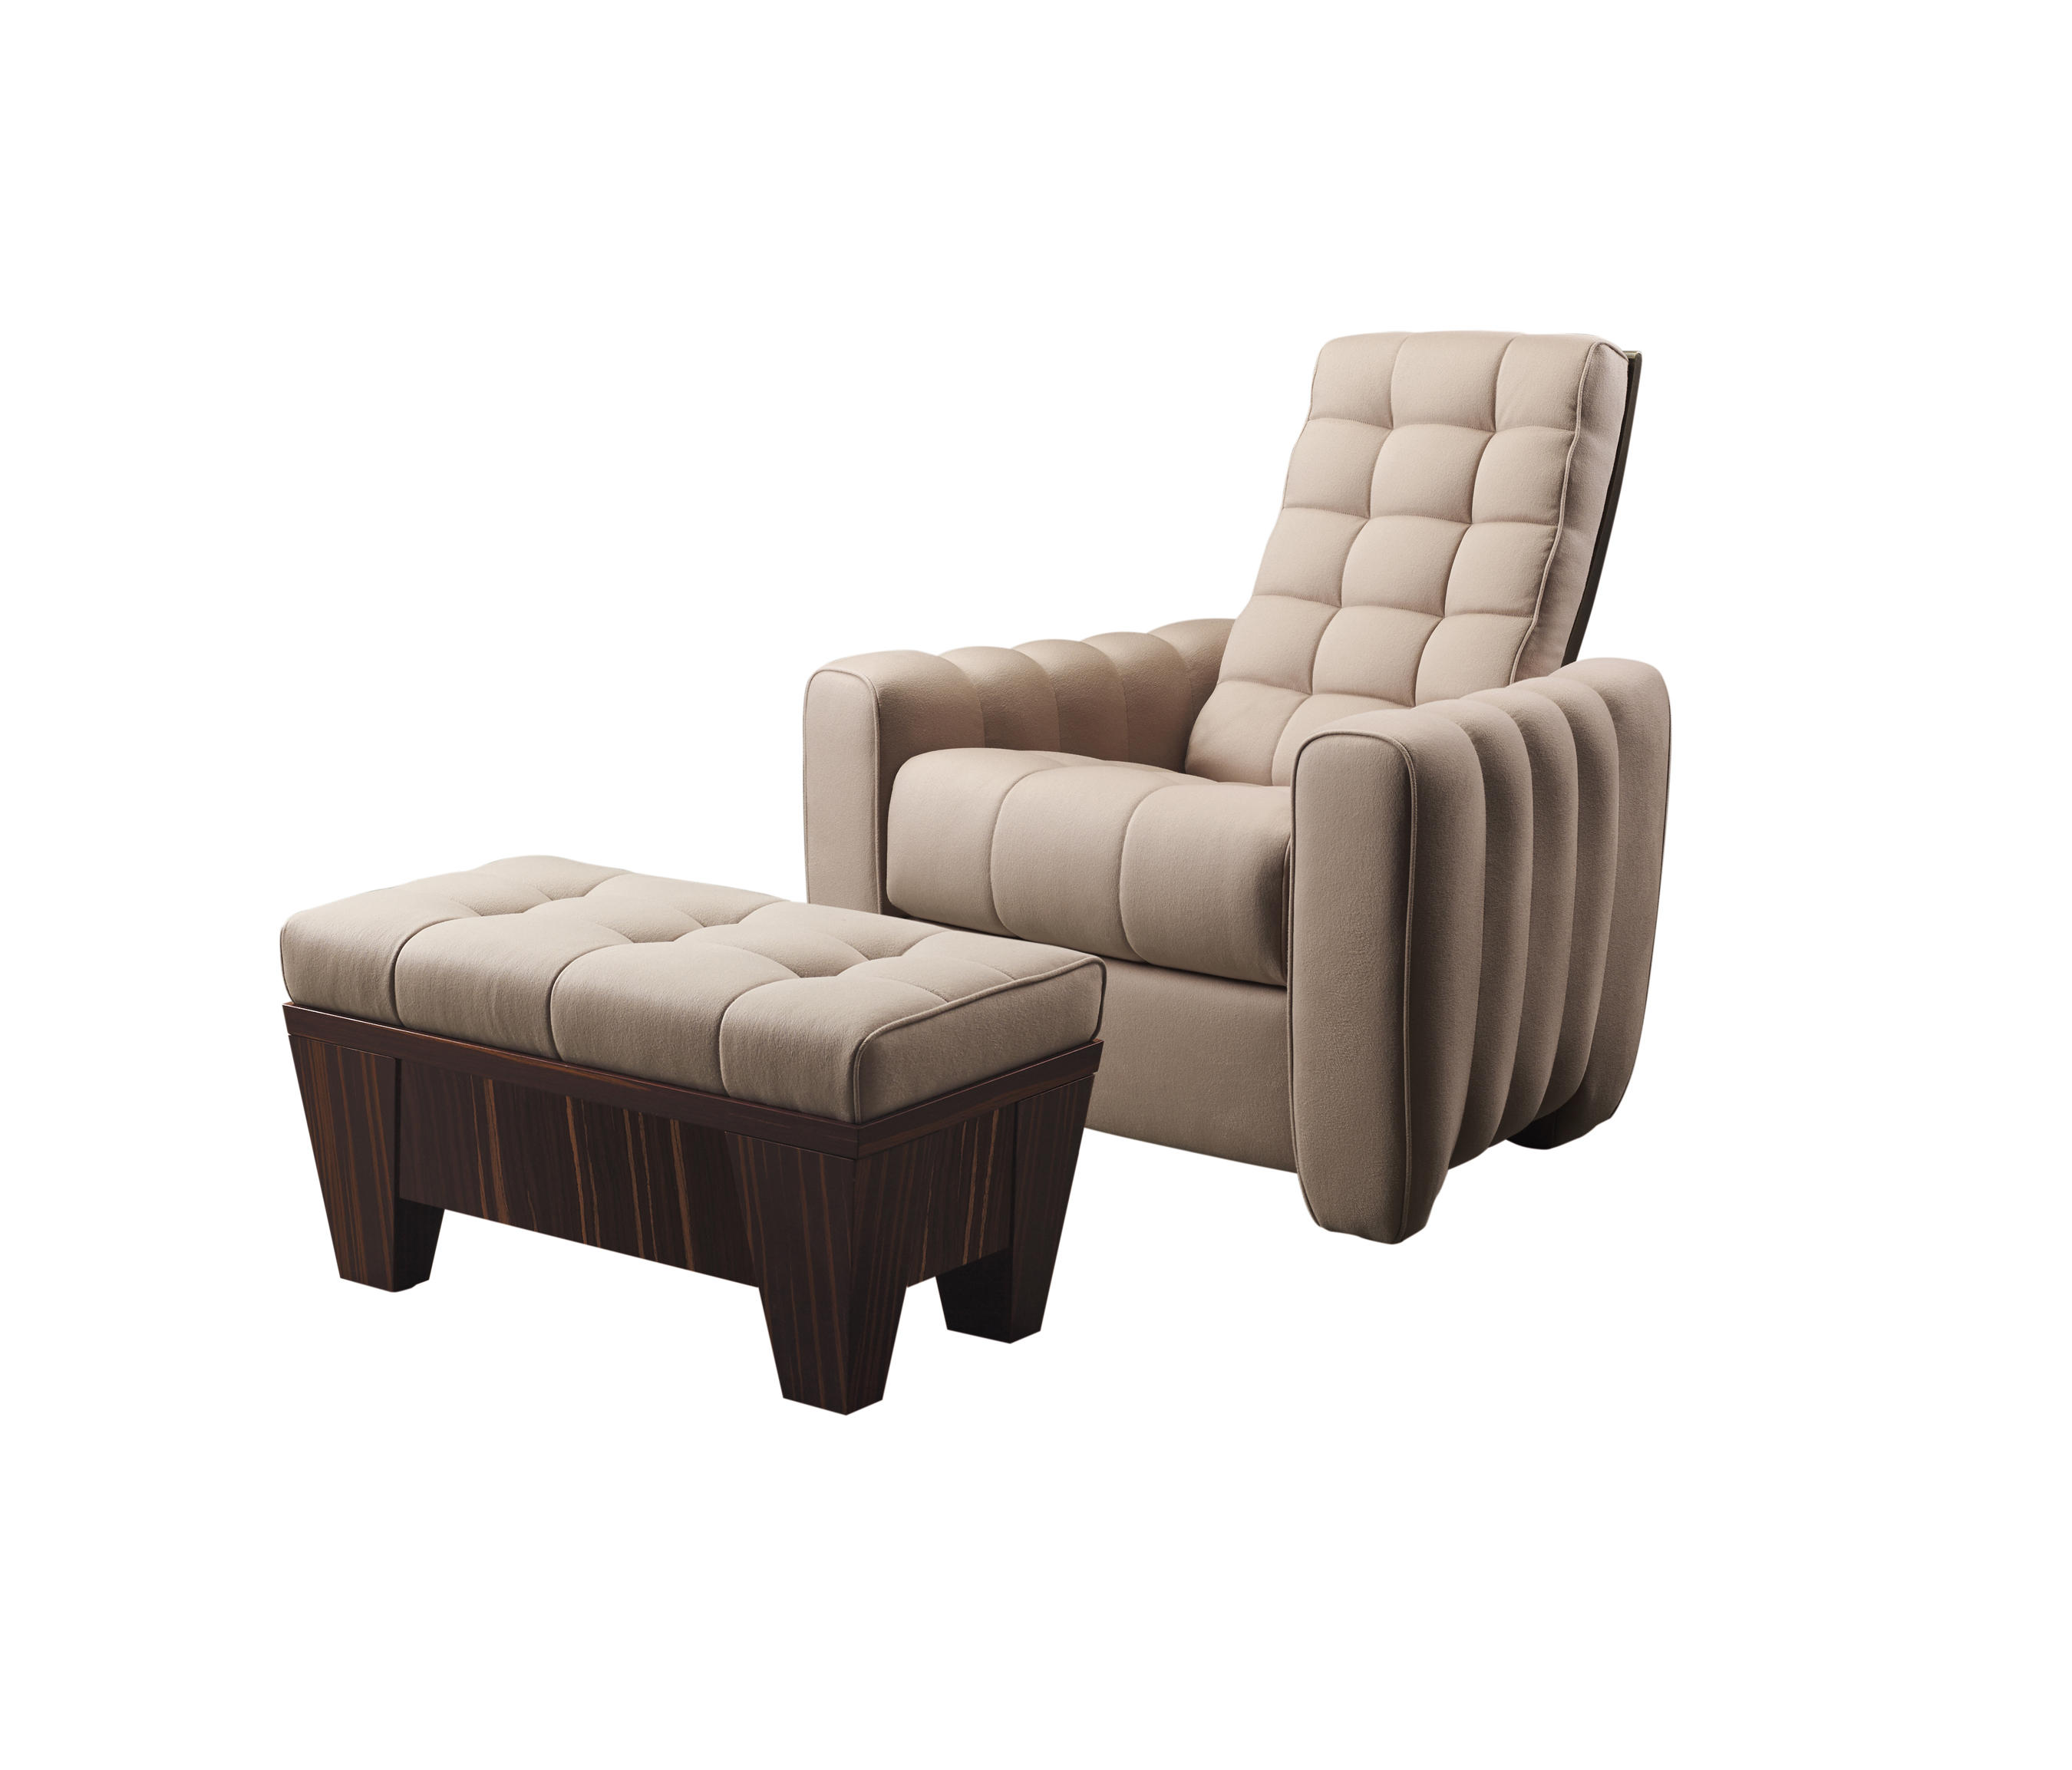 GERTRUDE RECLINING ARMCHAIR Lounge chairs from Promemoria